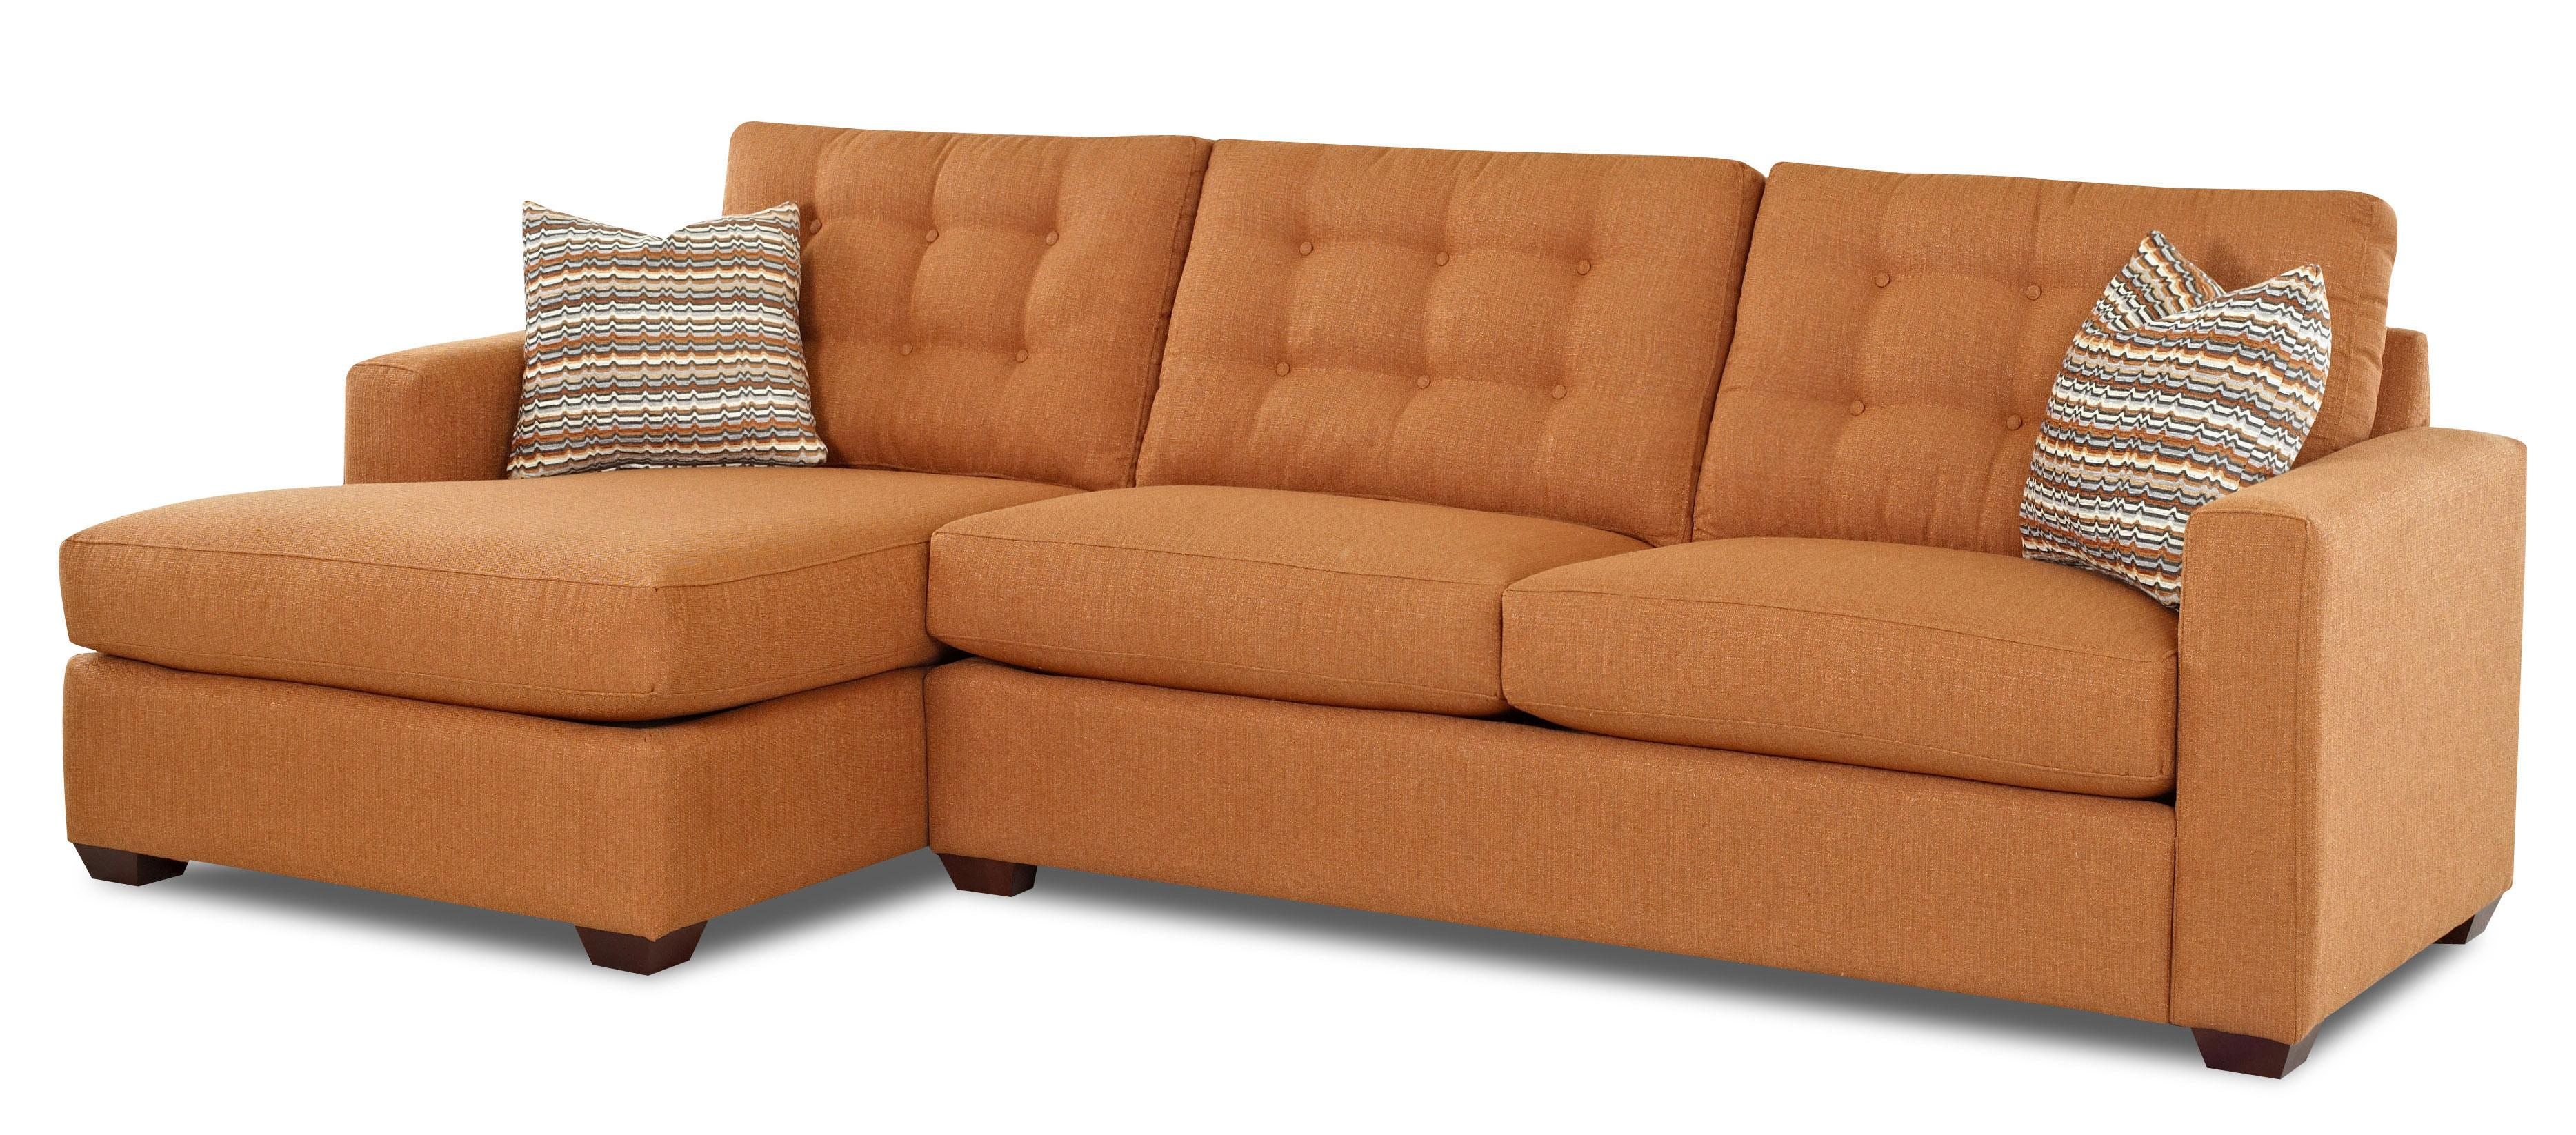 Contemporary Sectional Sofa with Left Facing Chaise Lounge  sc 1 st  Wolf Furniture : sectional sofa chaise lounge - Sectionals, Sofas & Couches